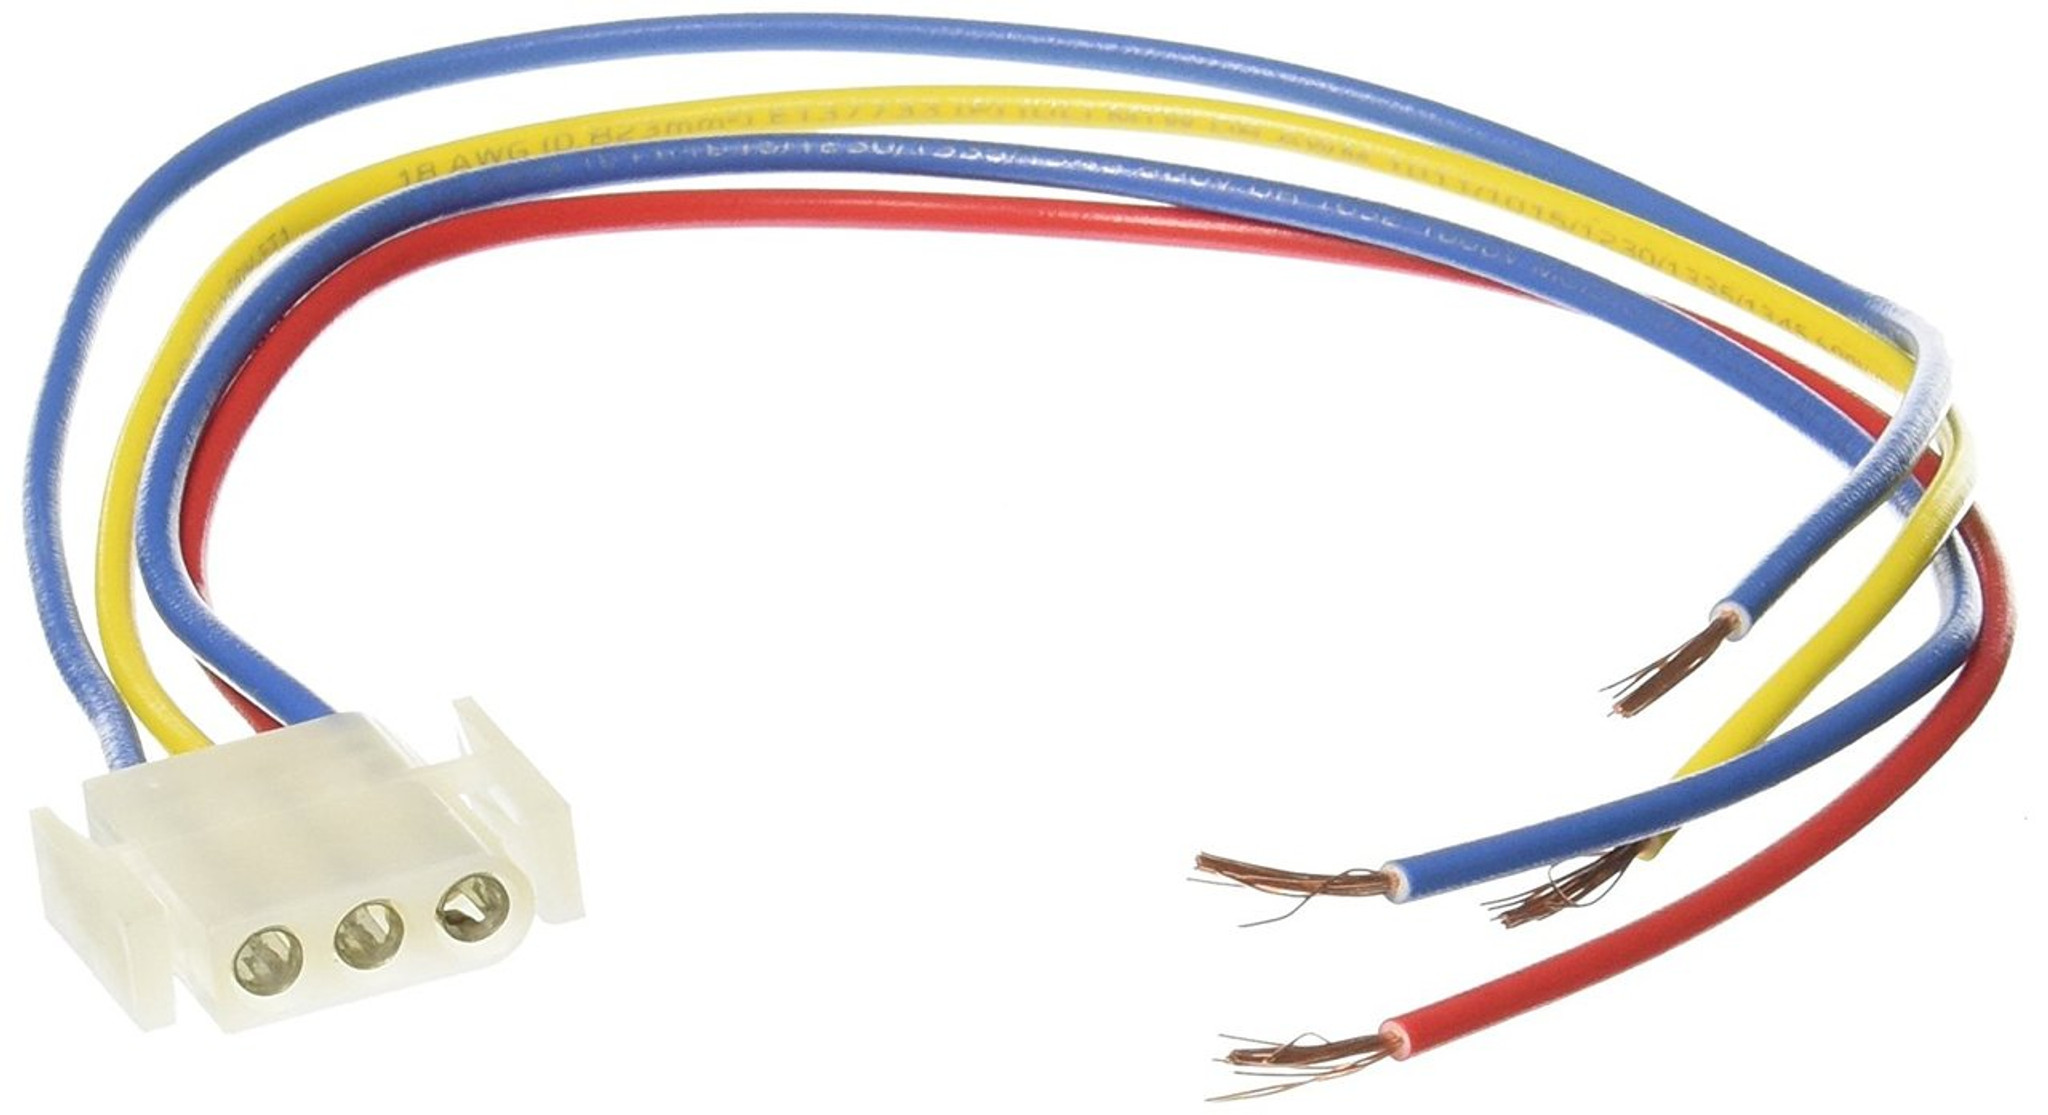 Suburban Furnace Power Supply Wire Harness 520322 (3 pin ) on